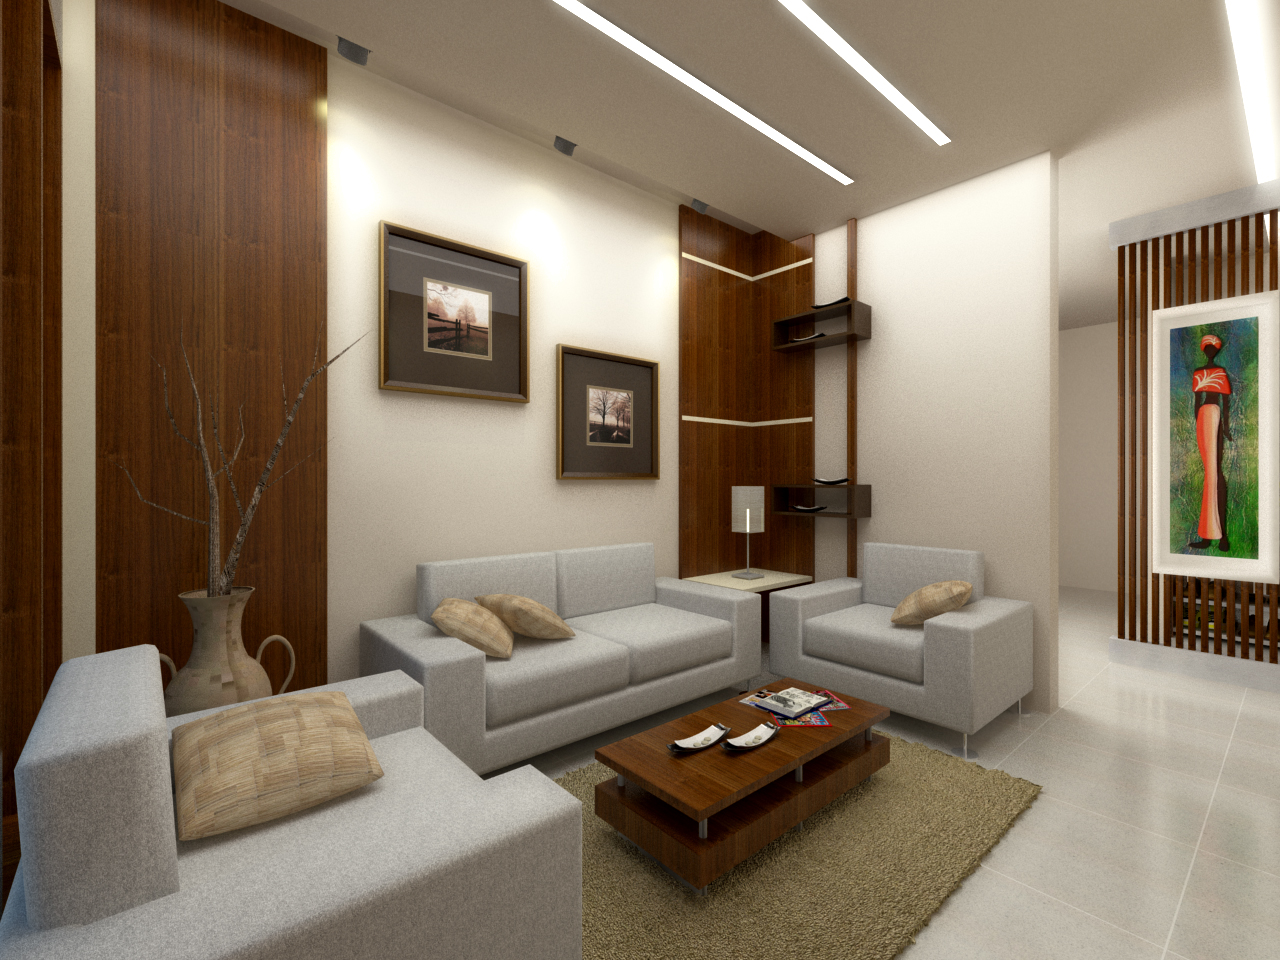 Interior Project – Interior House in Lampung